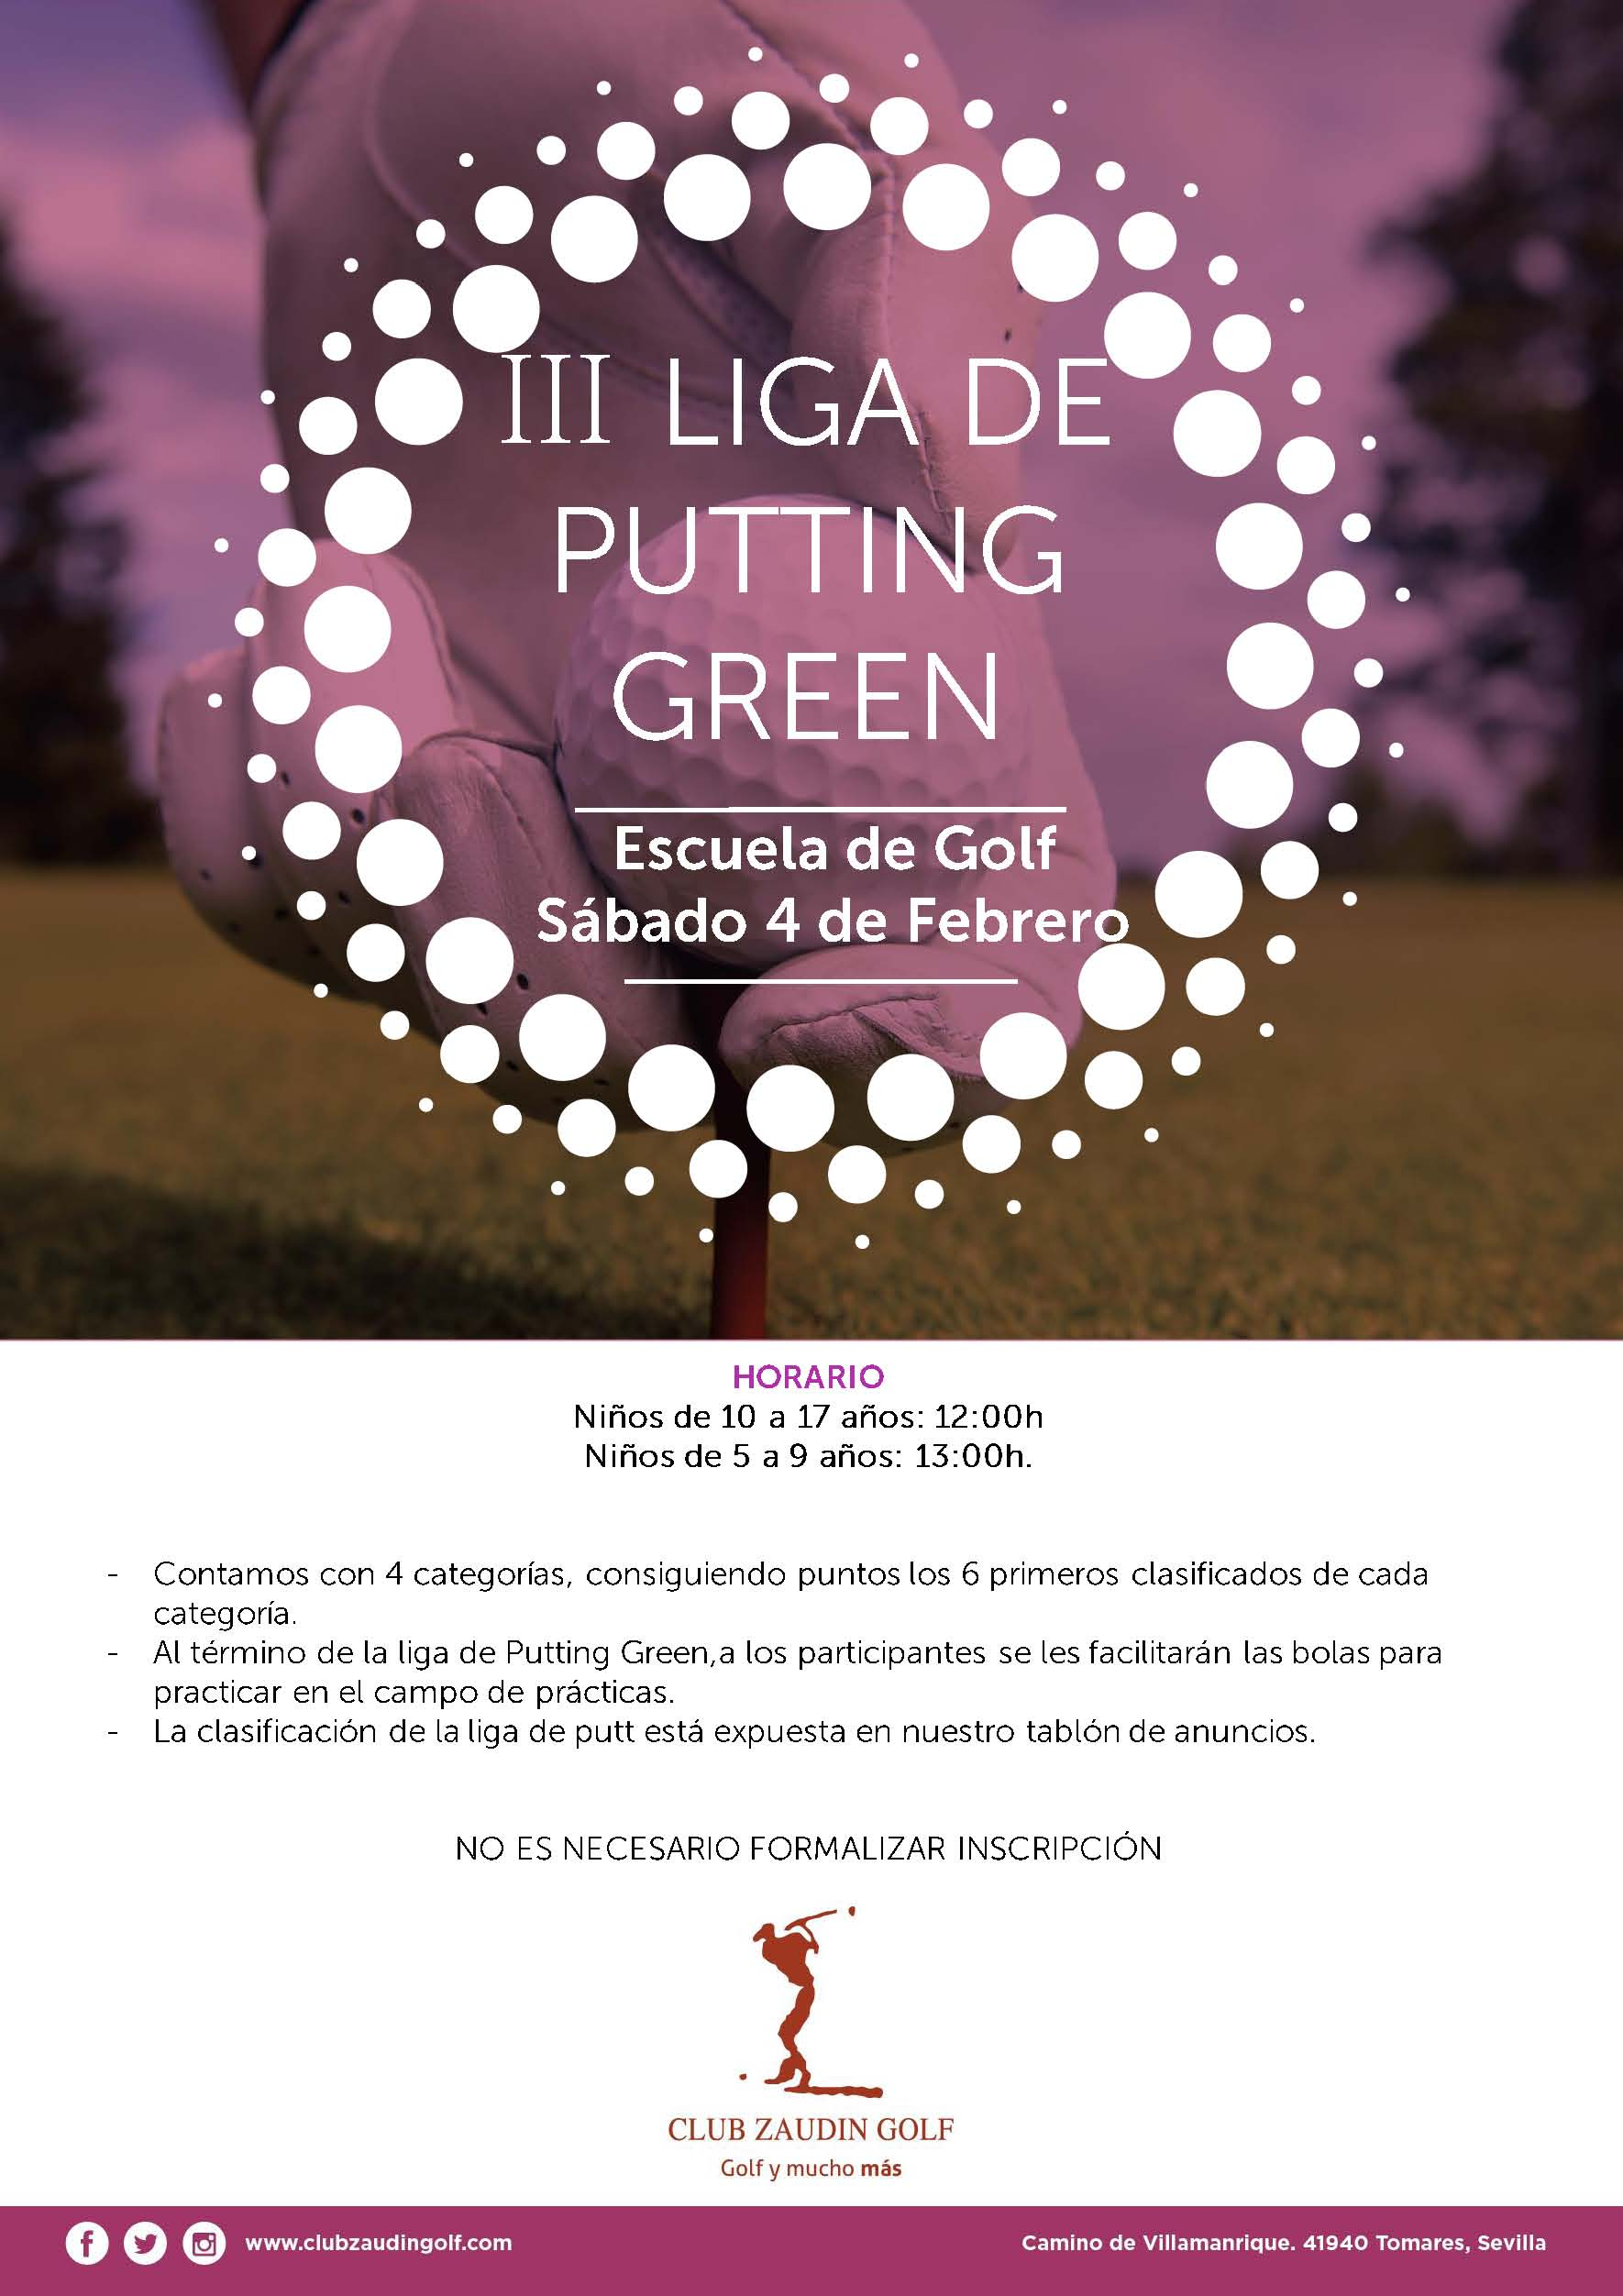 Putting Green 4 FEBRERO